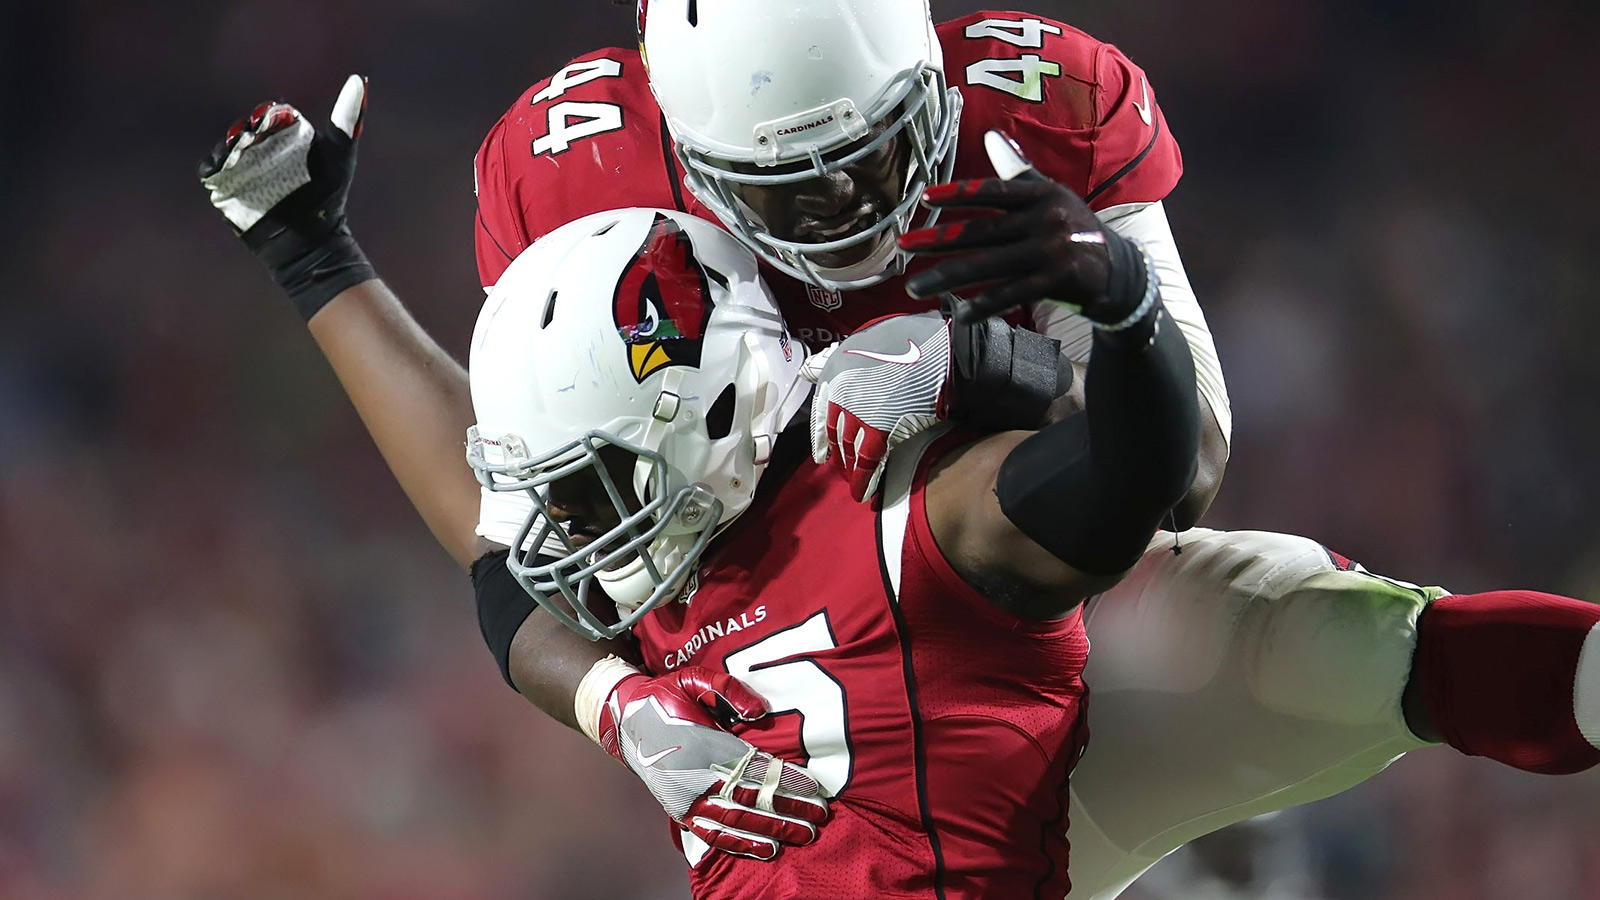 Cardinals' Arians: 'I think we're a very good football team'